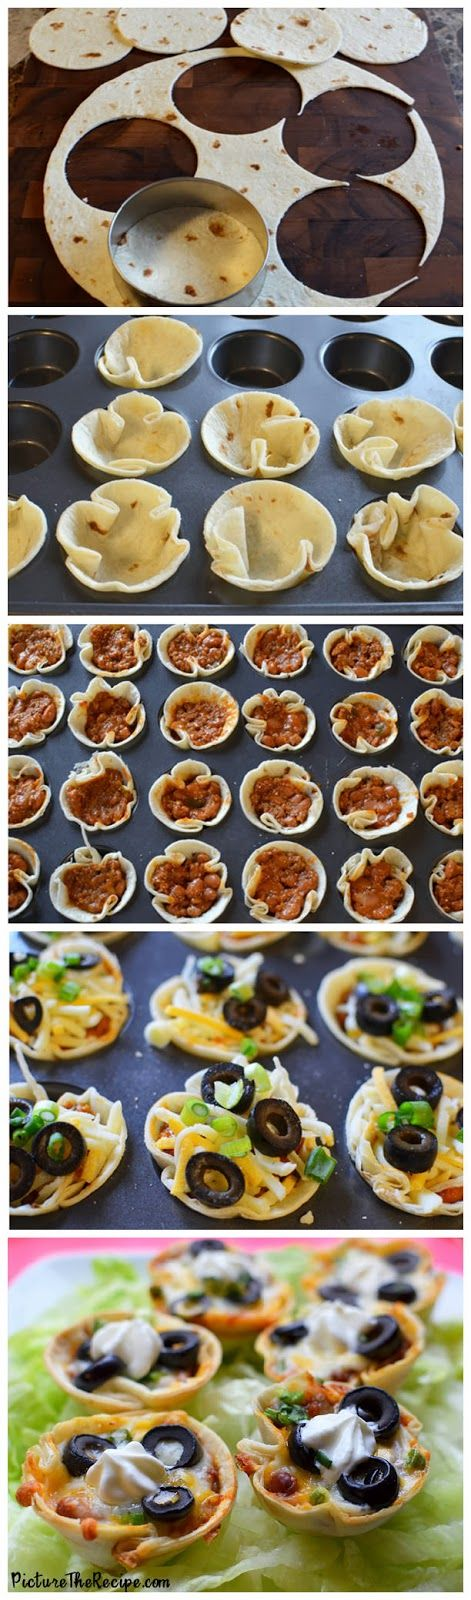 Mini Mexican Pizza 3-4 Tortilla Shells  2 (15oz) Cans of Chili  1 Cup Shredded Cheese  Small can of Black Olives (sliced)  3-4 Scallions/ green onions (finely sliced)  1/2 cup Sour Cream